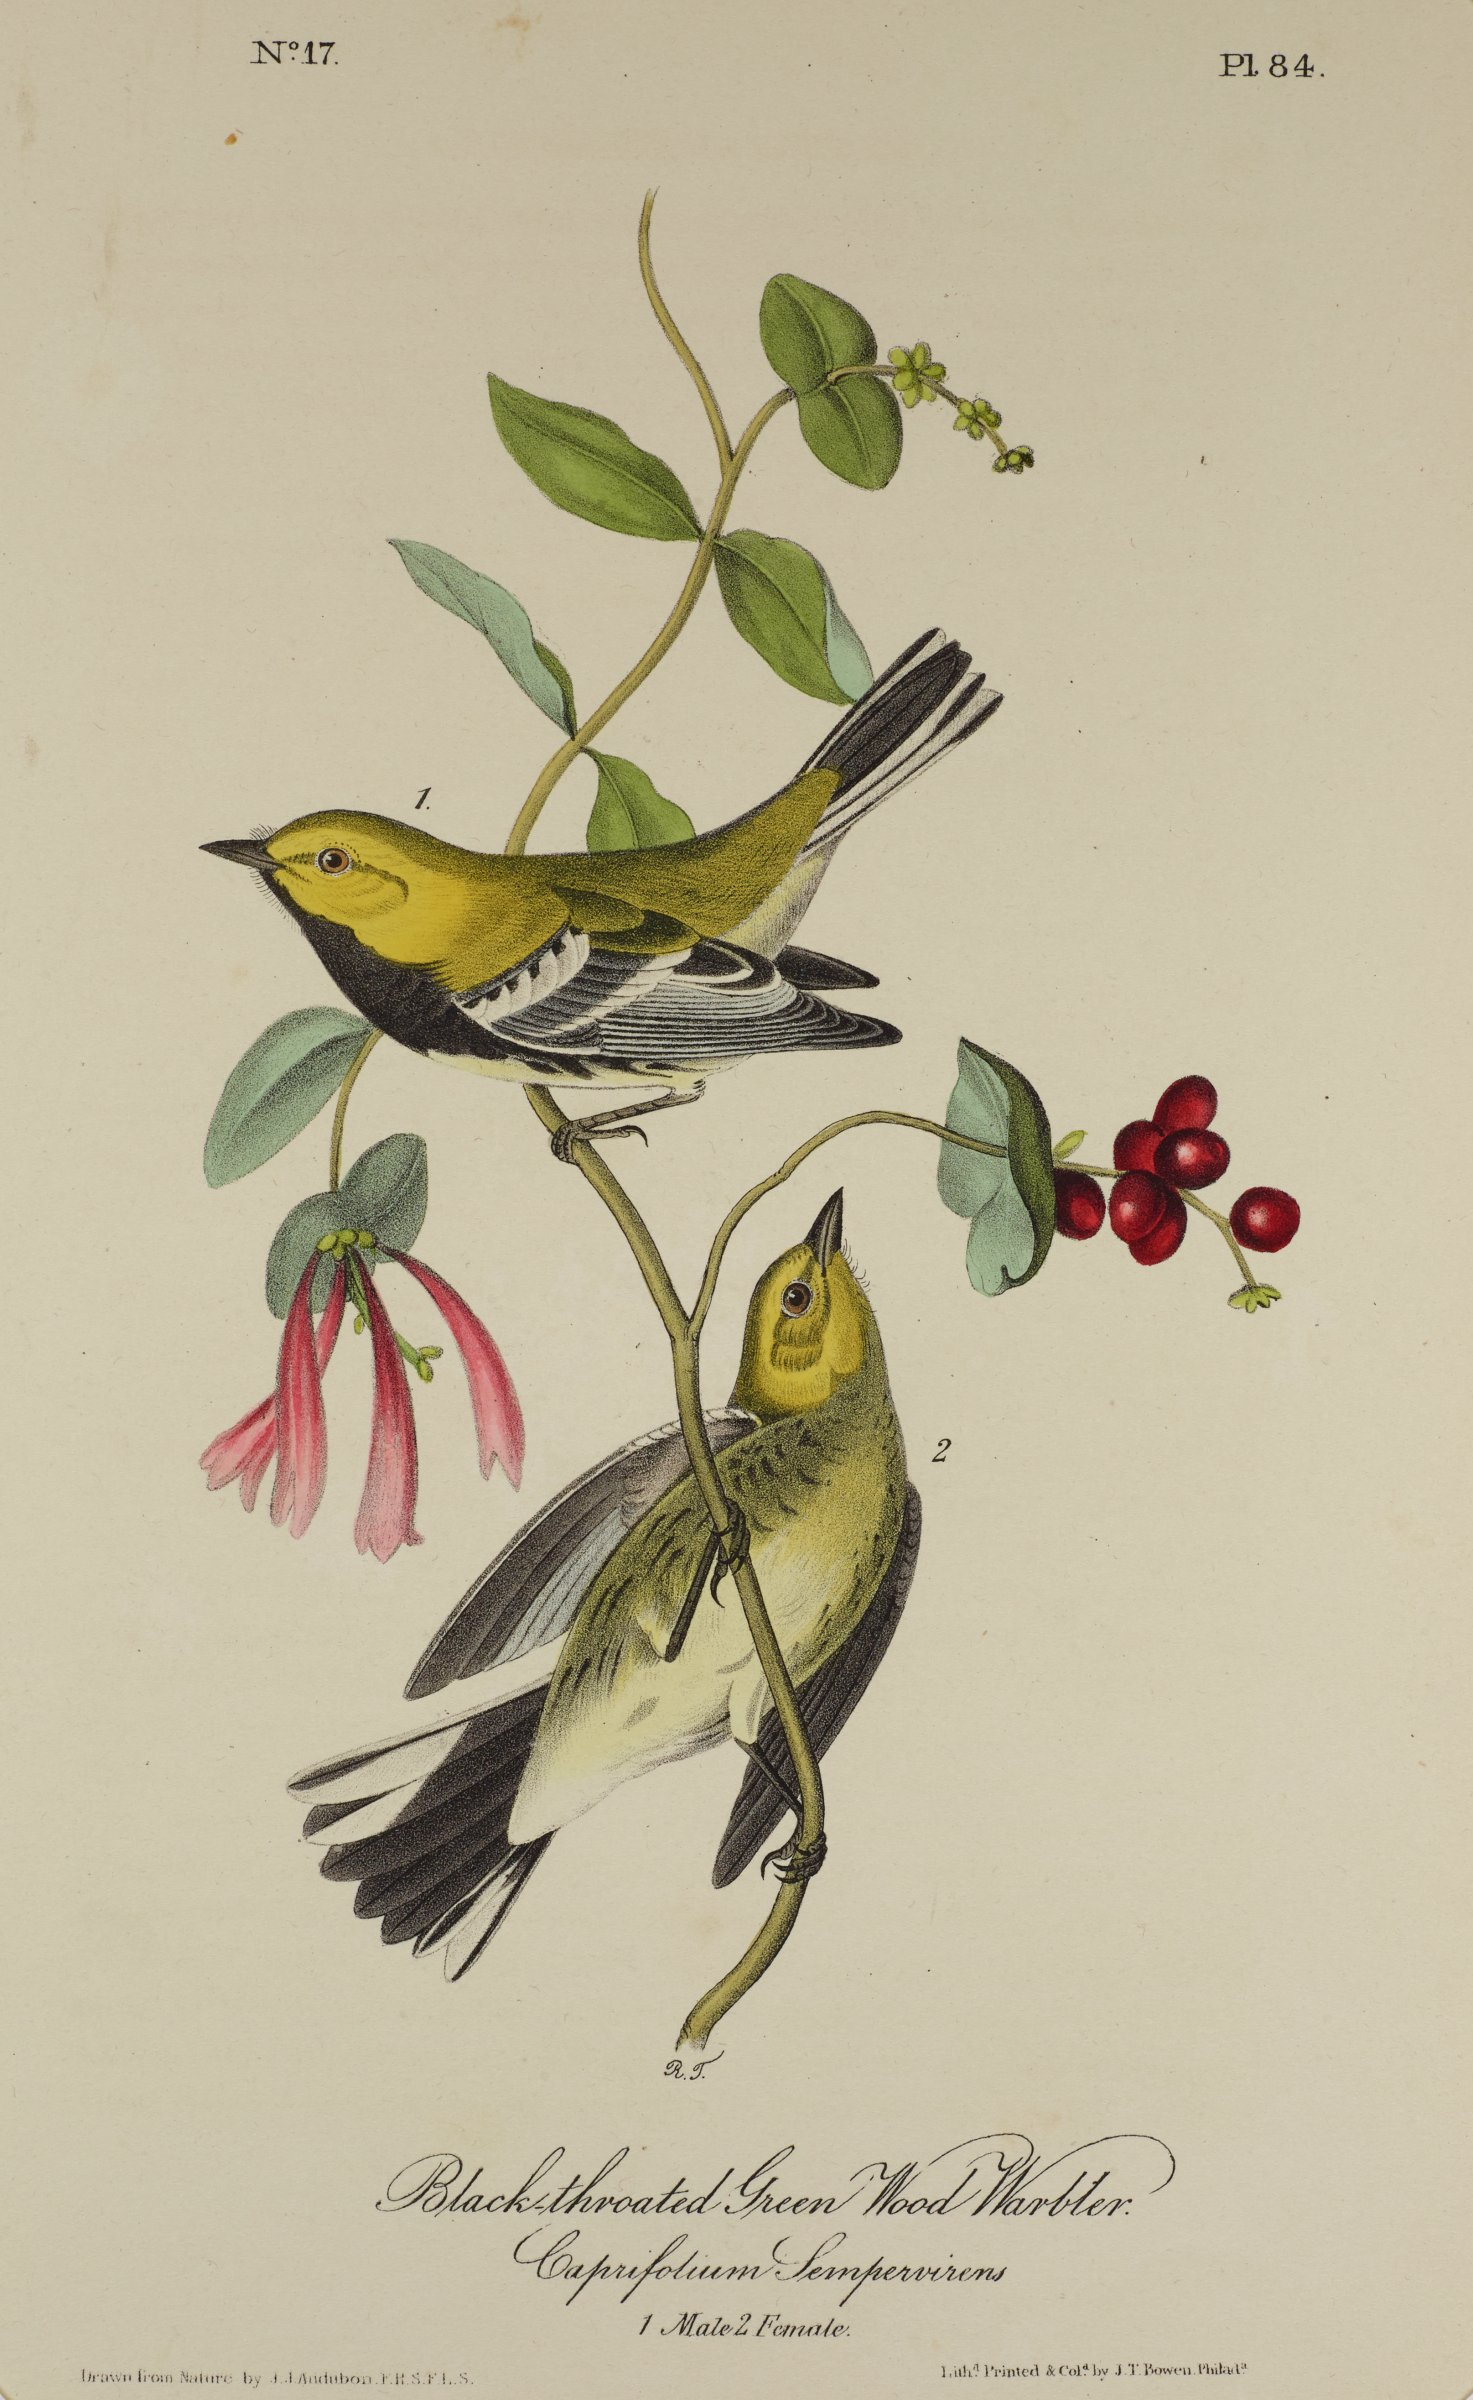 Two birds are depicted perched on a thin branch that blooms with a reddish-pink flower and small red berries.The birds are covered in yellow, black, and white feathers.